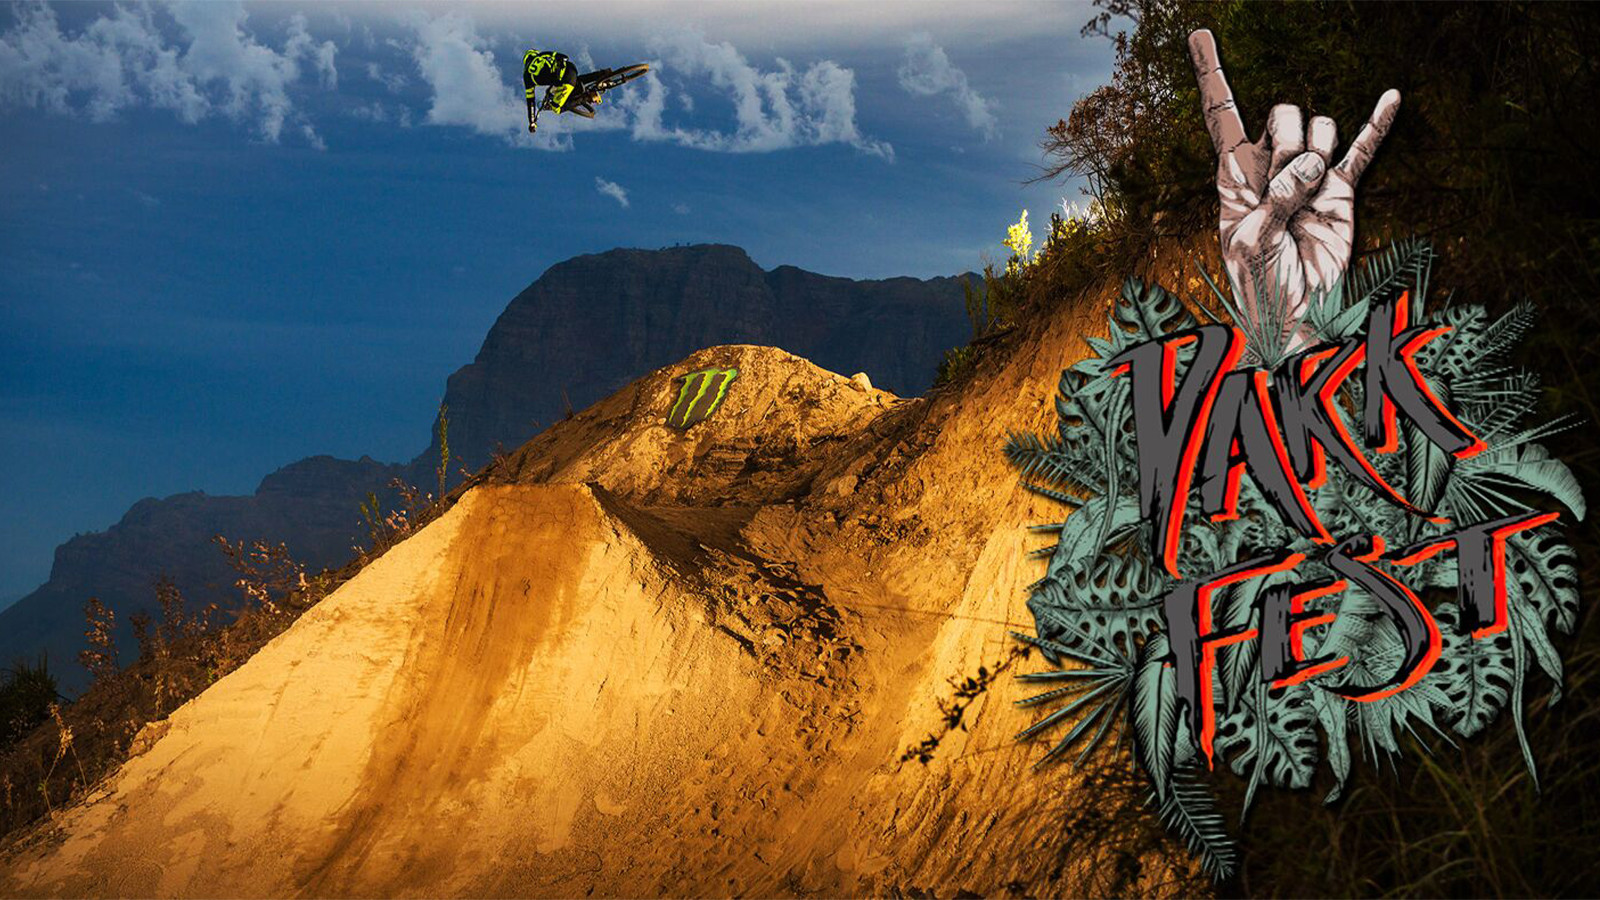 Kenda DarkFEST 2020: Course Construction and Preview